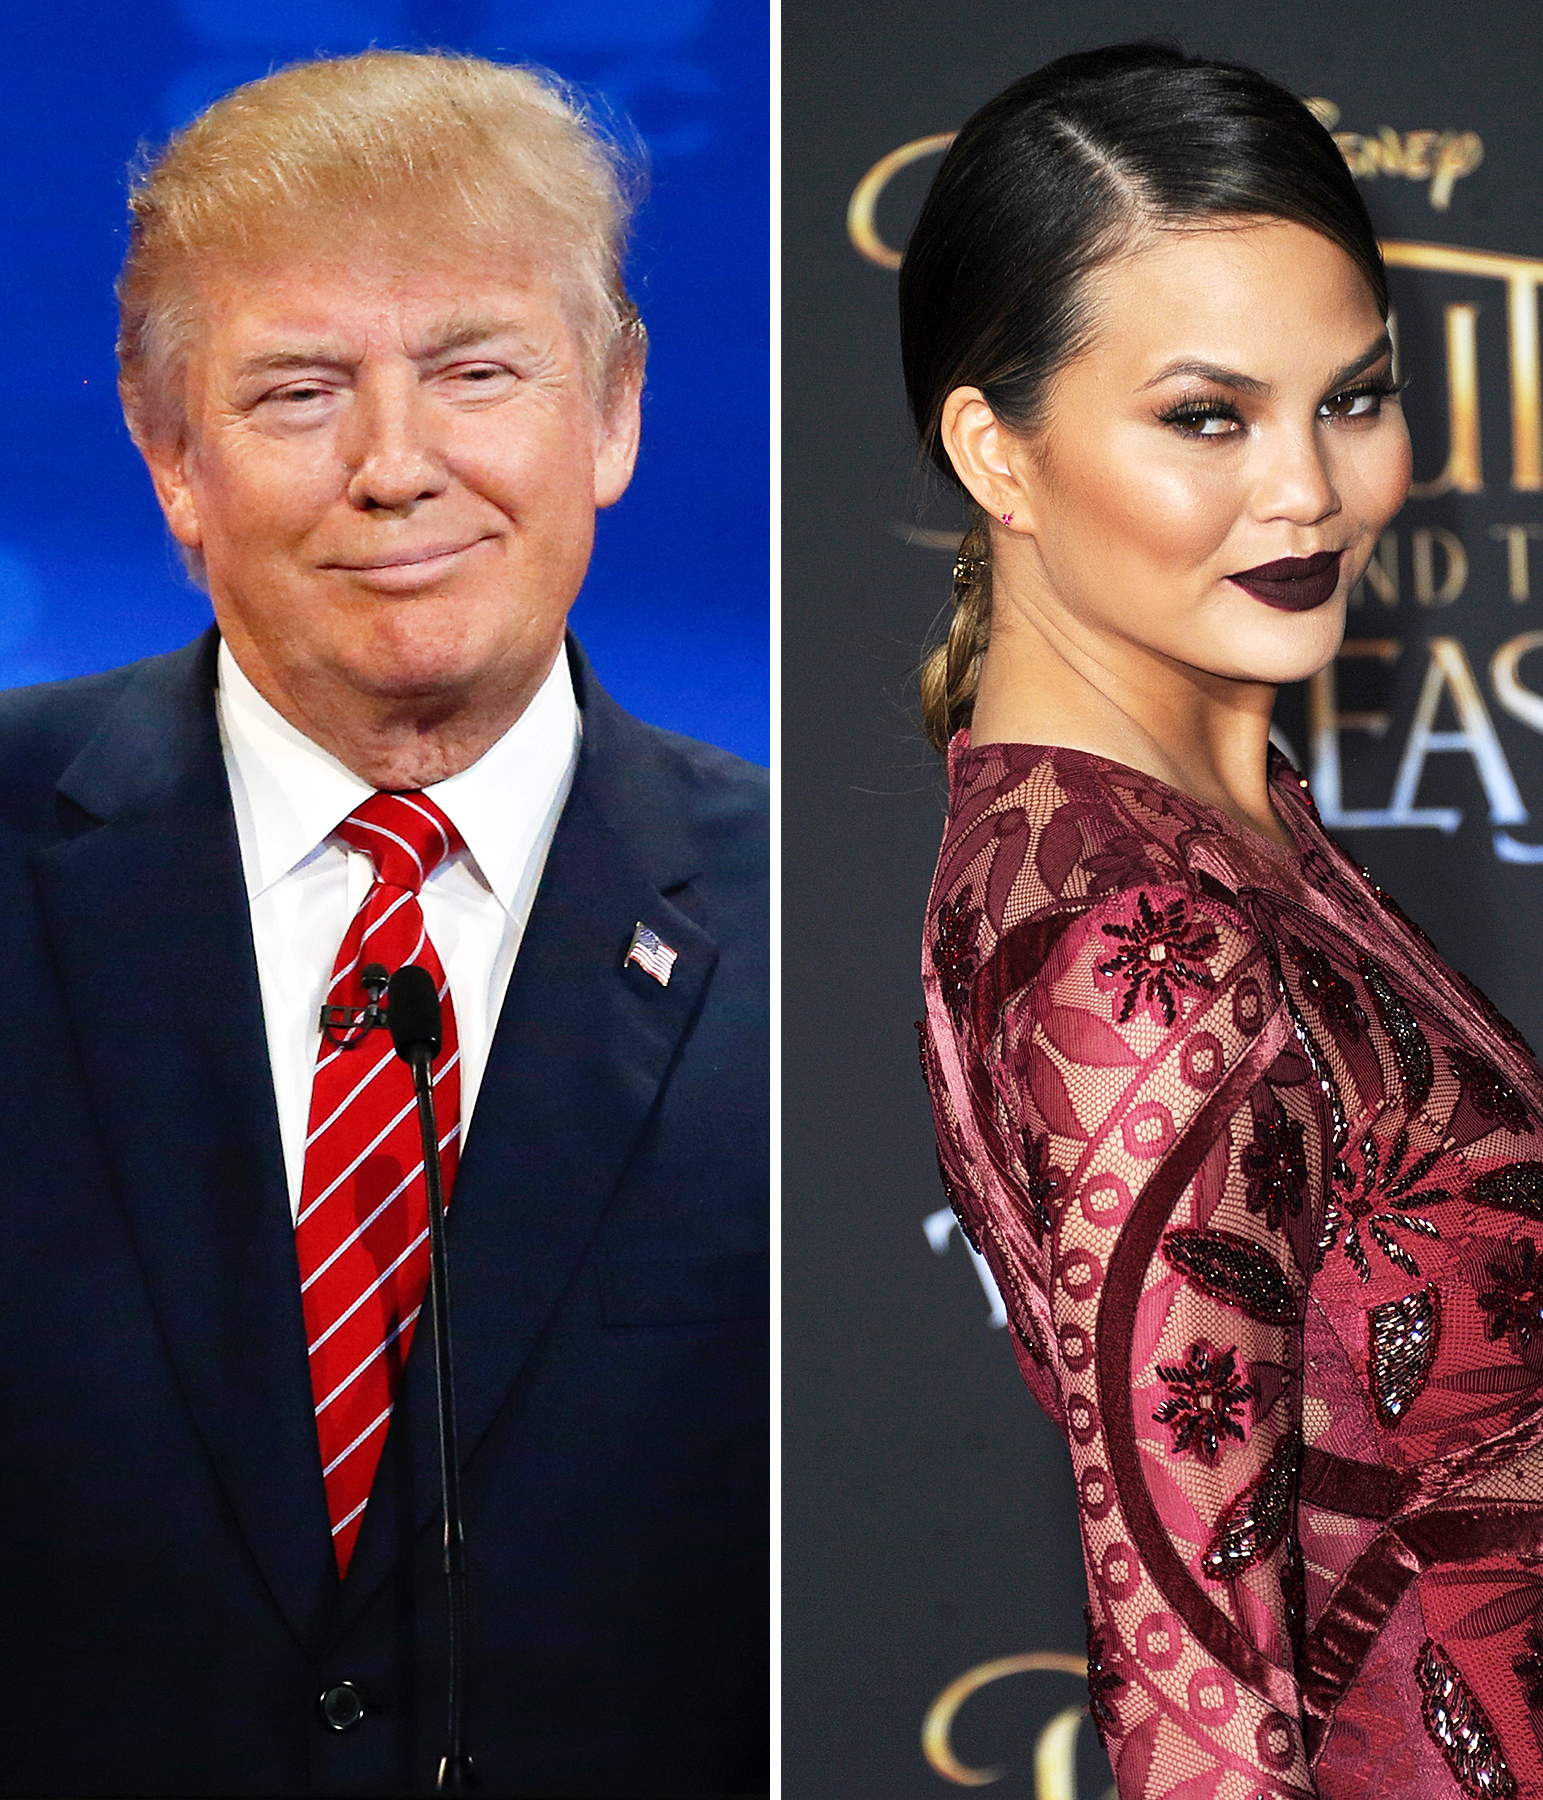 Donald Trump and Chrissy Teigen